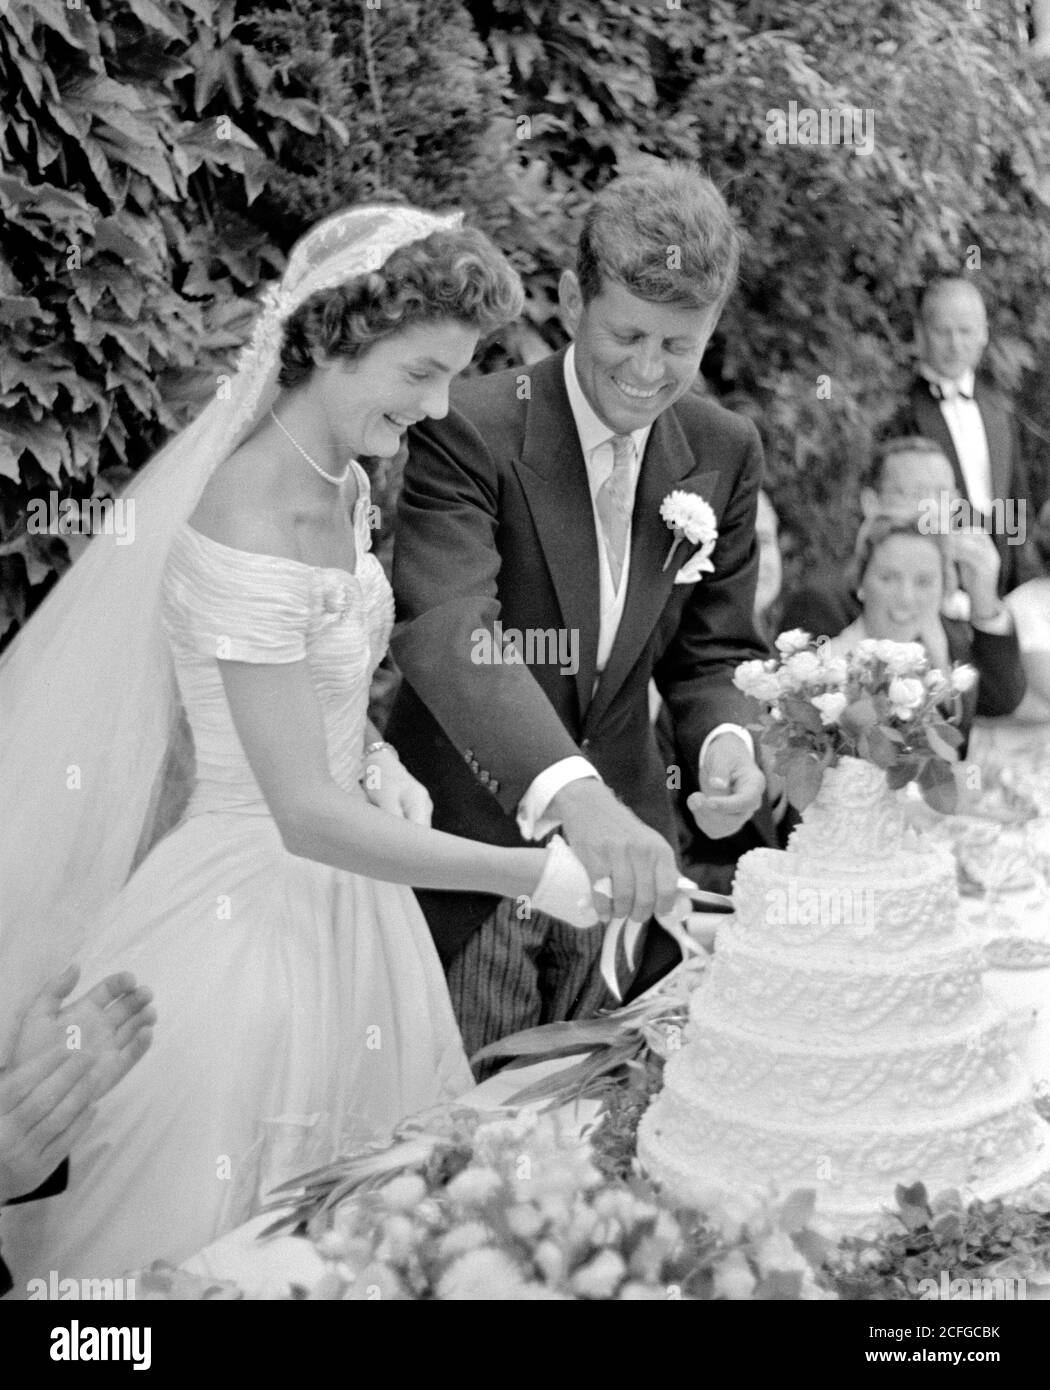 Marriage Jacqueline High Resolution Stock Photography And Images Alamy